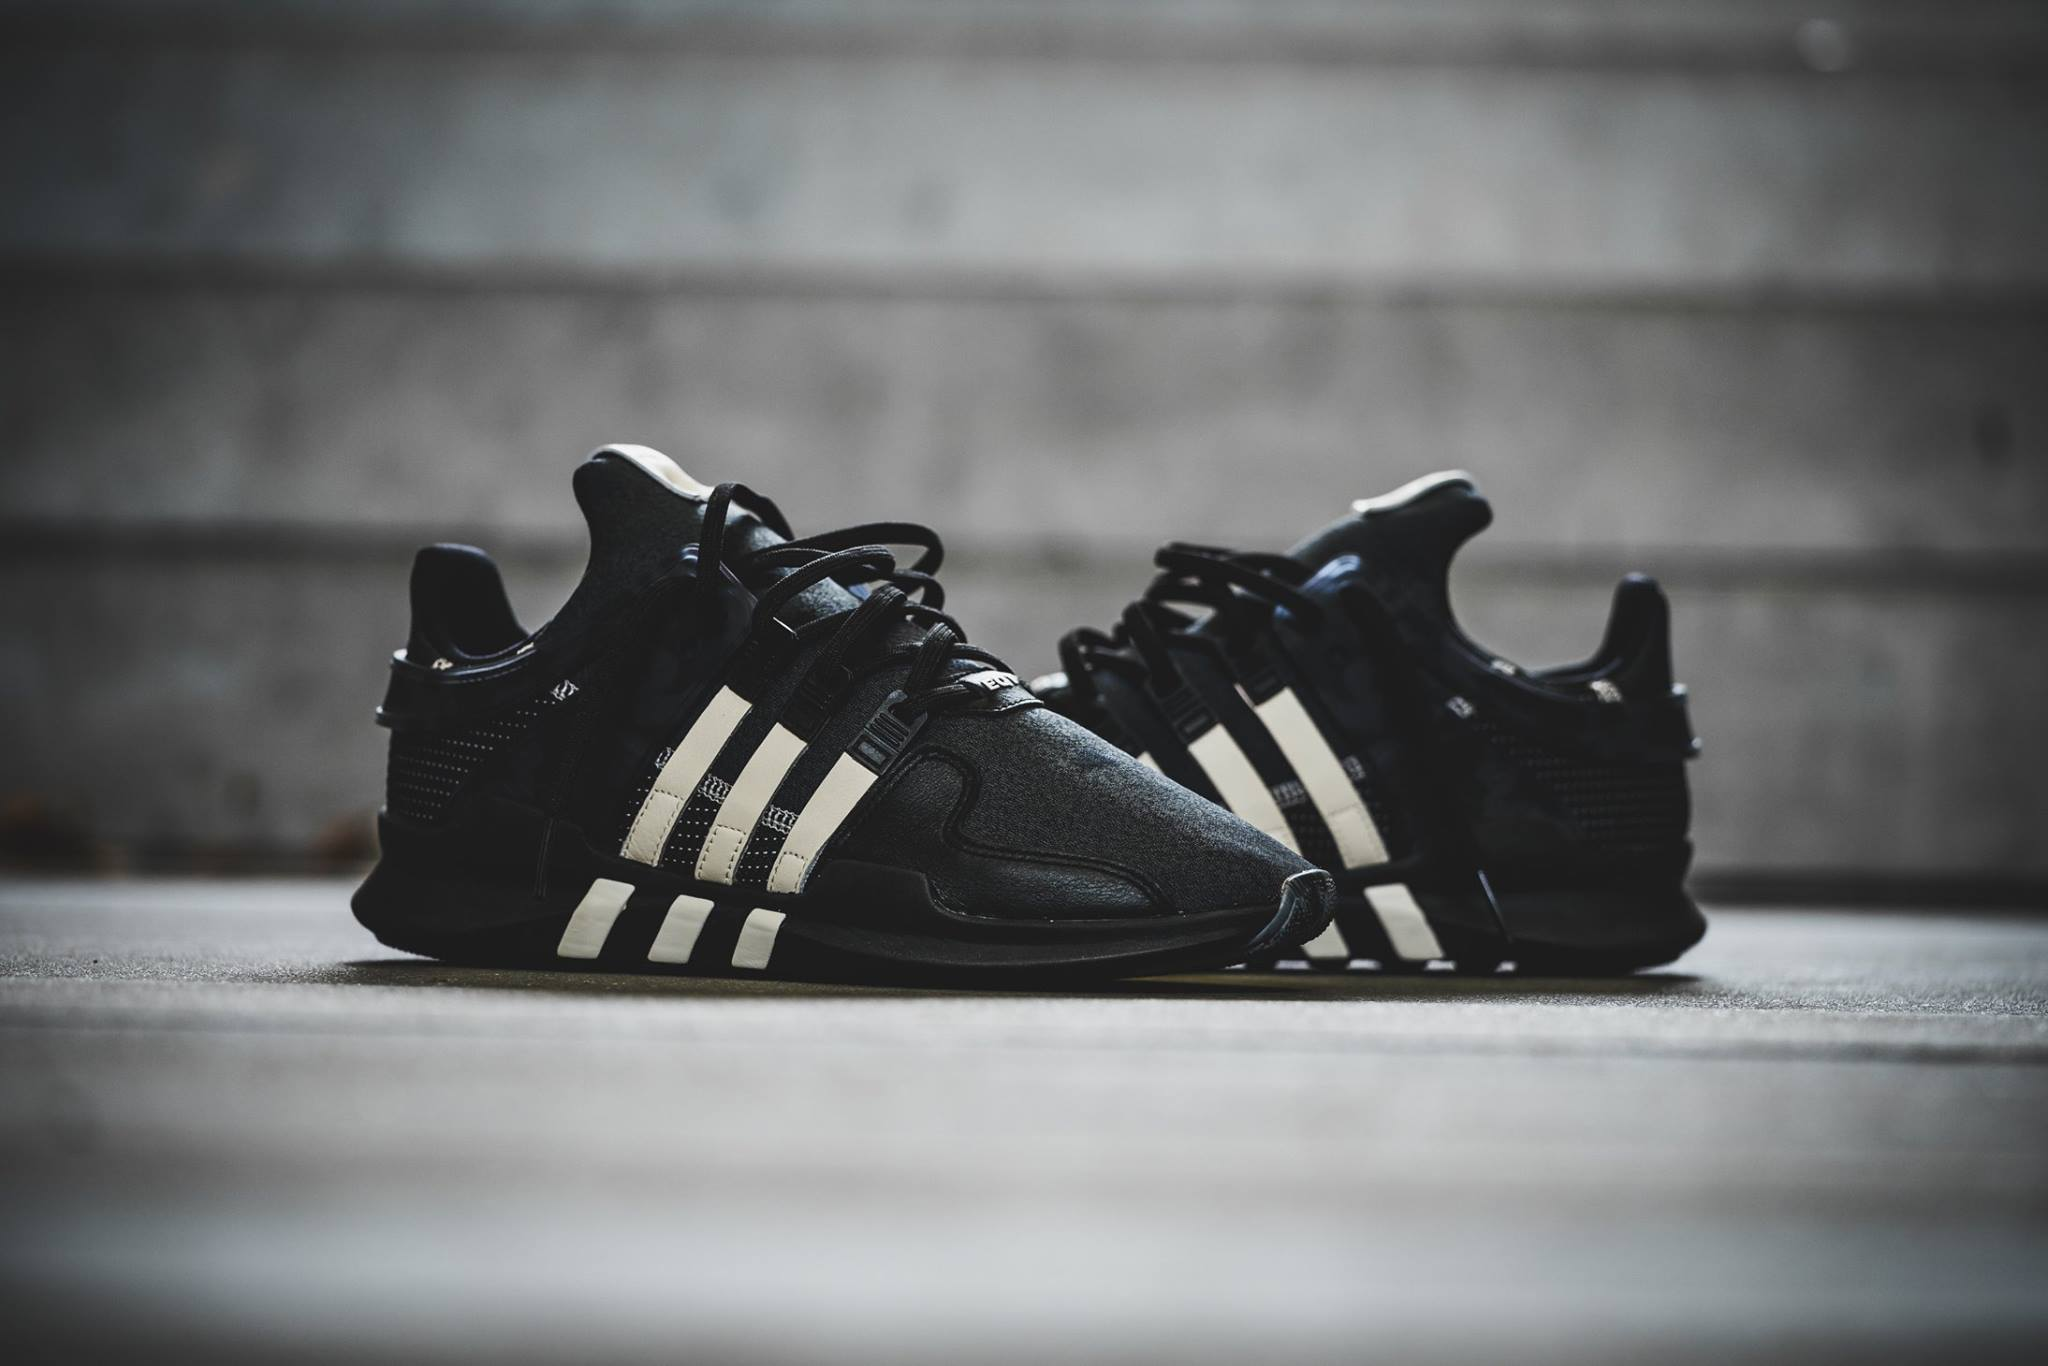 san francisco 2de39 cf47b UNDEFEATED x Adidas Consortium EQT Support ADV Release Links